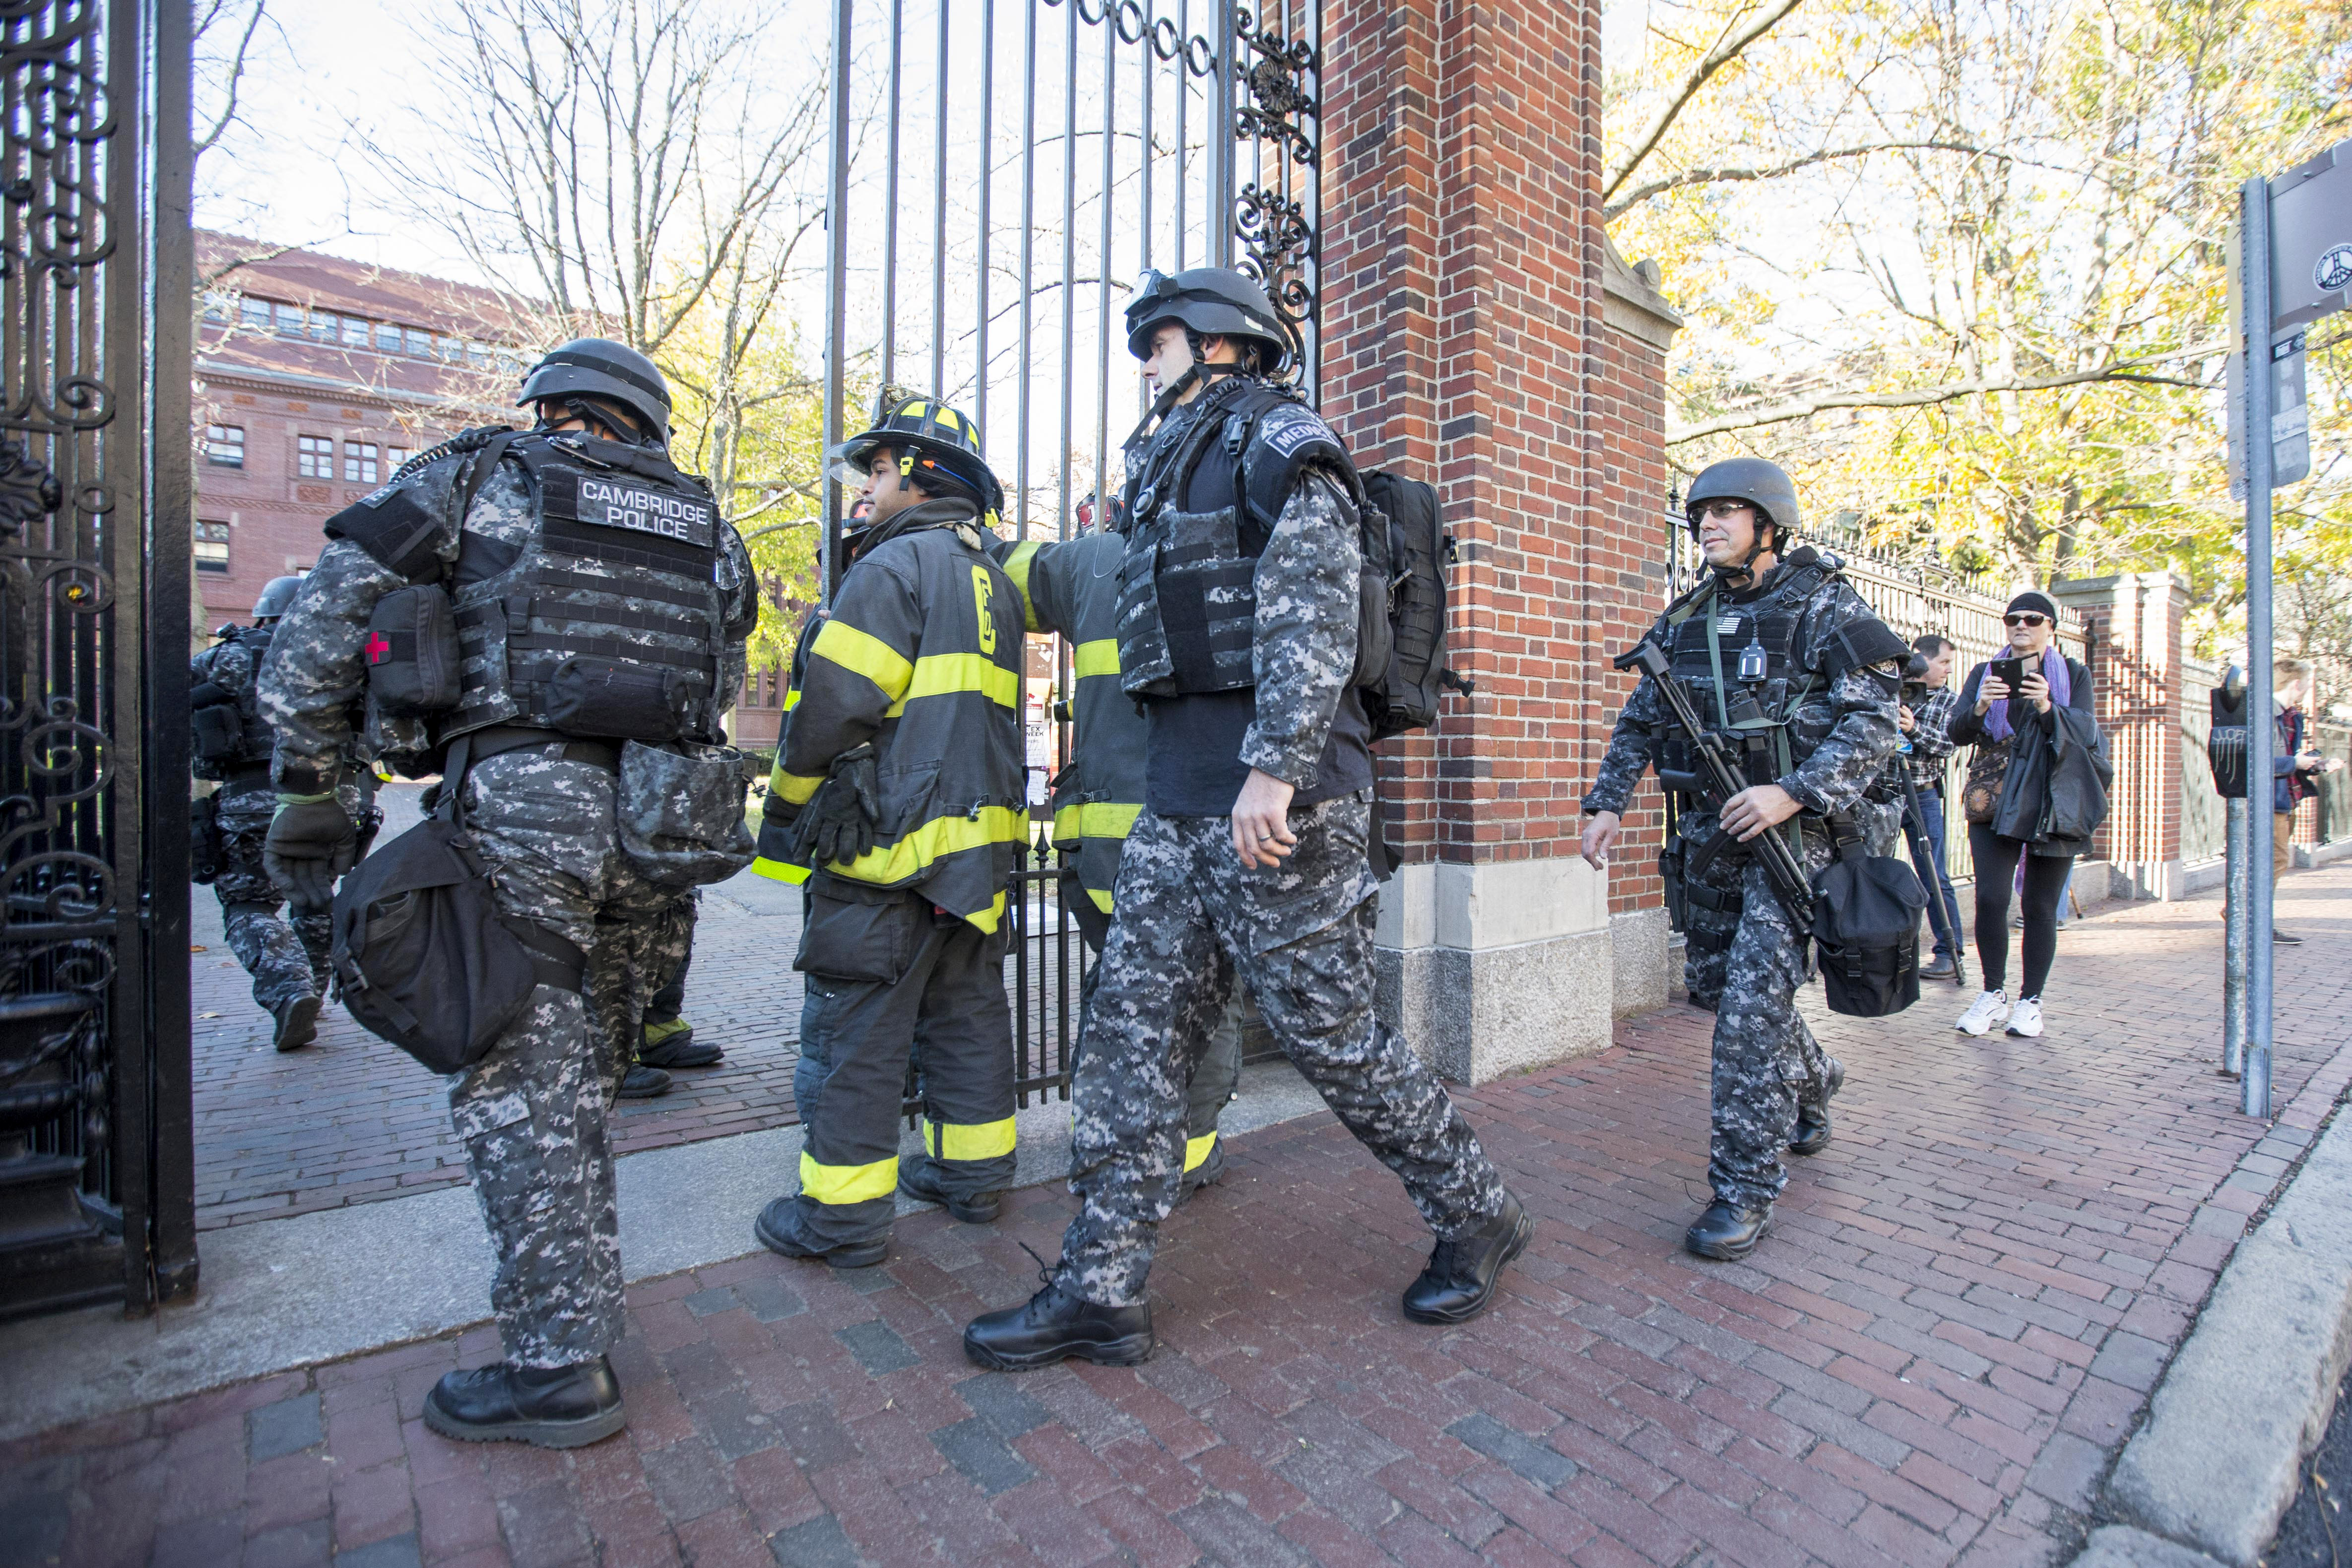 Cambridge Police SWAT team members arrive at Harvard Yard following a bomb threat that was made on campus on November 16, 2015 in Cambridge, Massachusetts. Multiple buildings were evacuated and the Harvard Yard was shut down so that authorities could search.